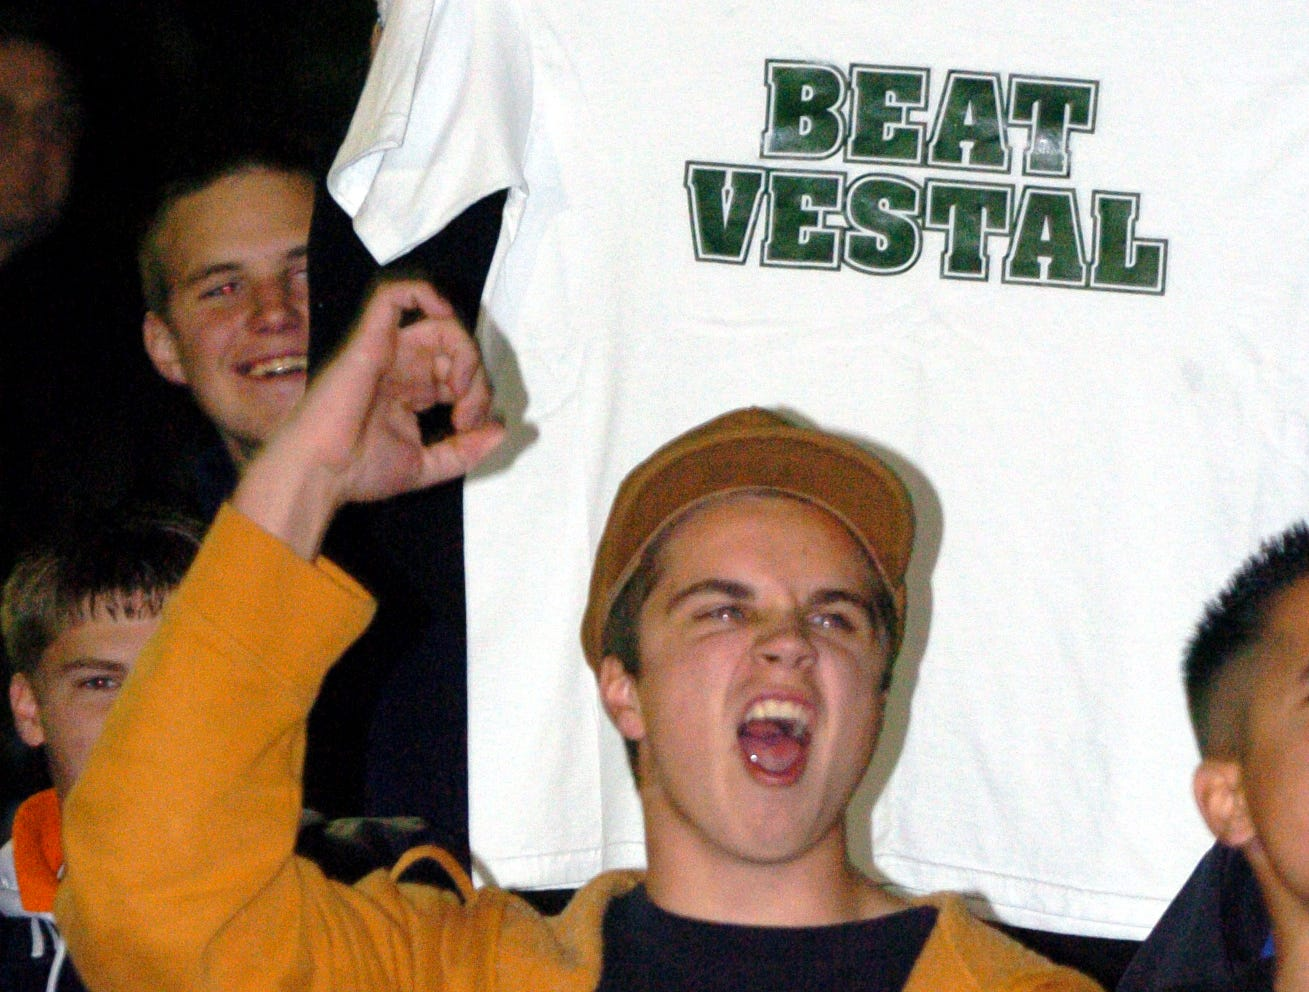 """From 2006: A shirt with the words """"BEAT VESTAL"""" printed on it is held up behind Union-Endicott supporter Nick Frazier, 16, as he cheers for the U-E football team during Friday's match atVestal."""